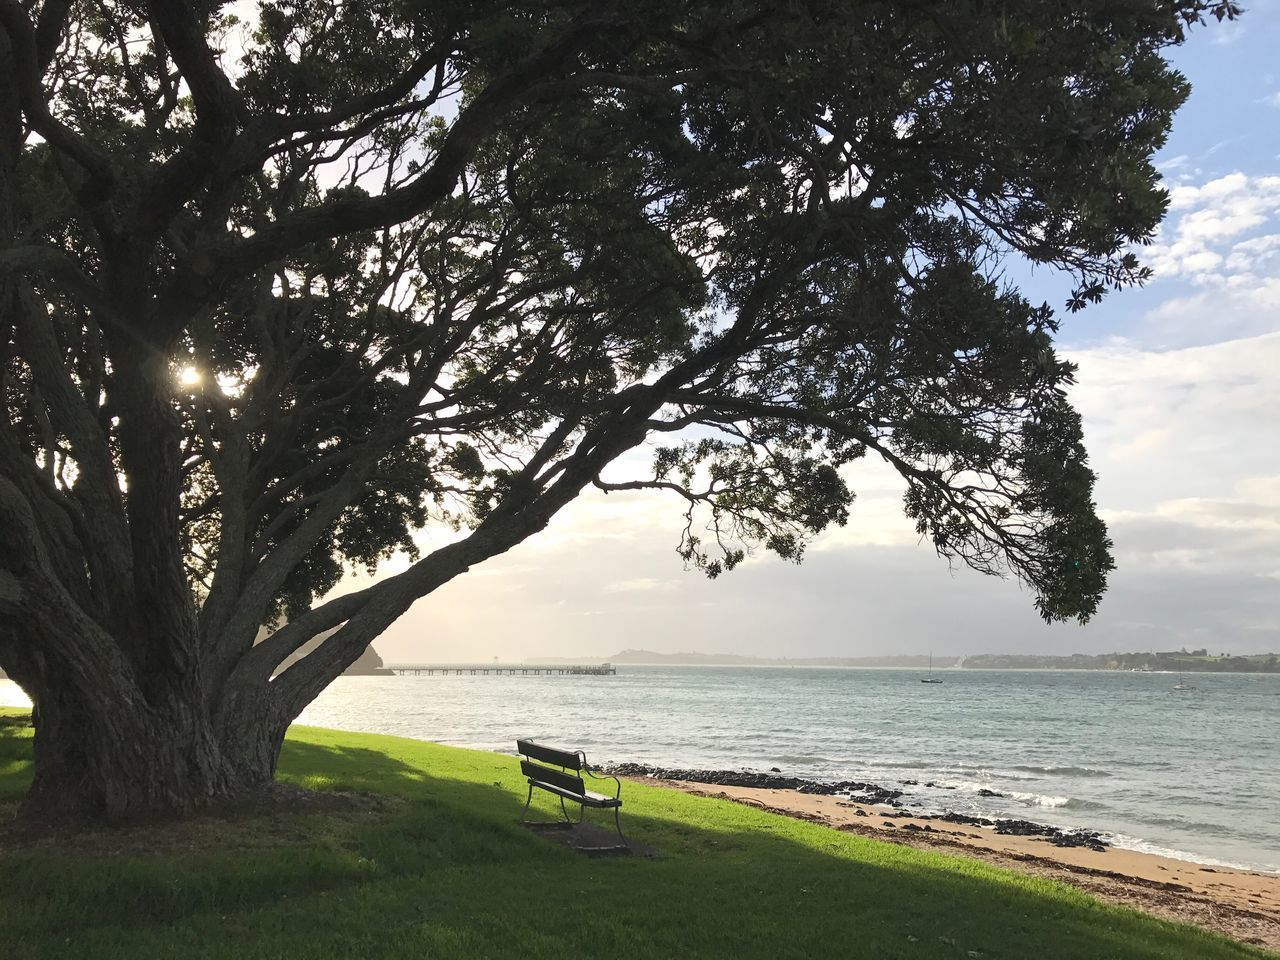 Light And Shadow Freshair Freedom Ocean View Beauty In Nature Beach Sea Tree Nature Scenics Tranquility Grass Day Sky Sunlight Cloud Outdoors Landscape Fresh Scent Bench Ocean Windy